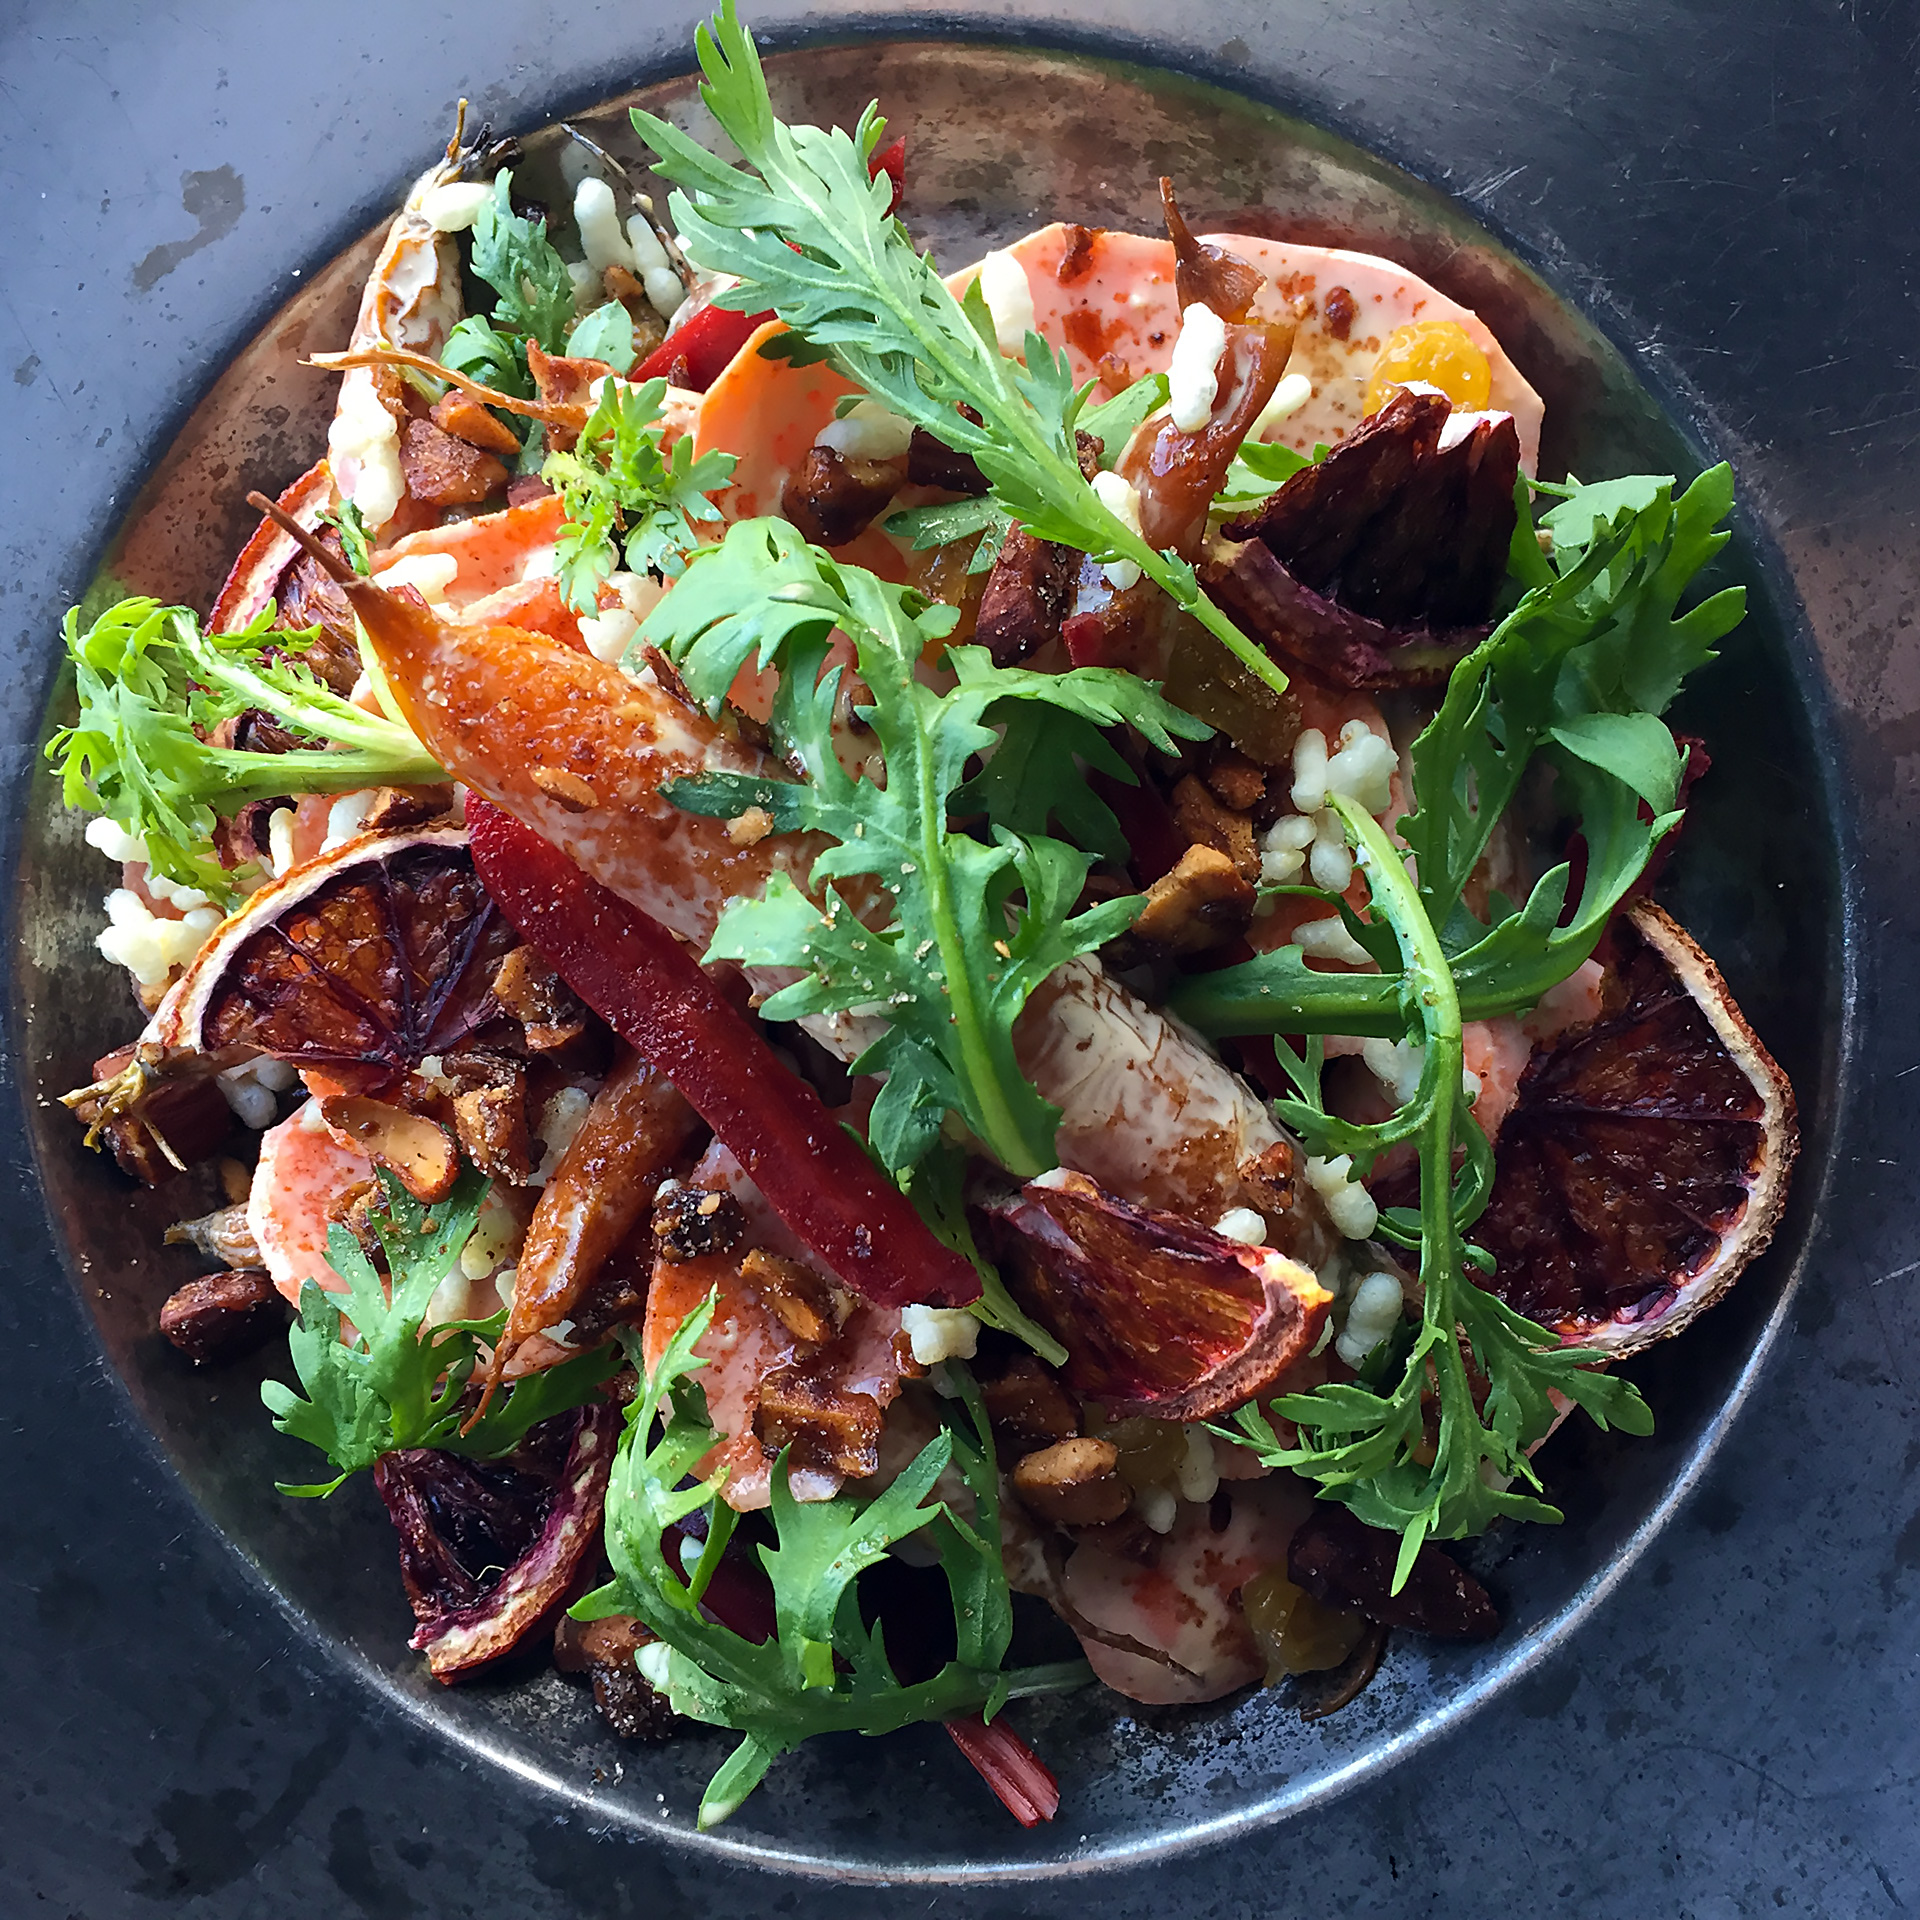 Smoked carrot salad with blood oranges, puffed grains, spiced nuts and chrysanthemum